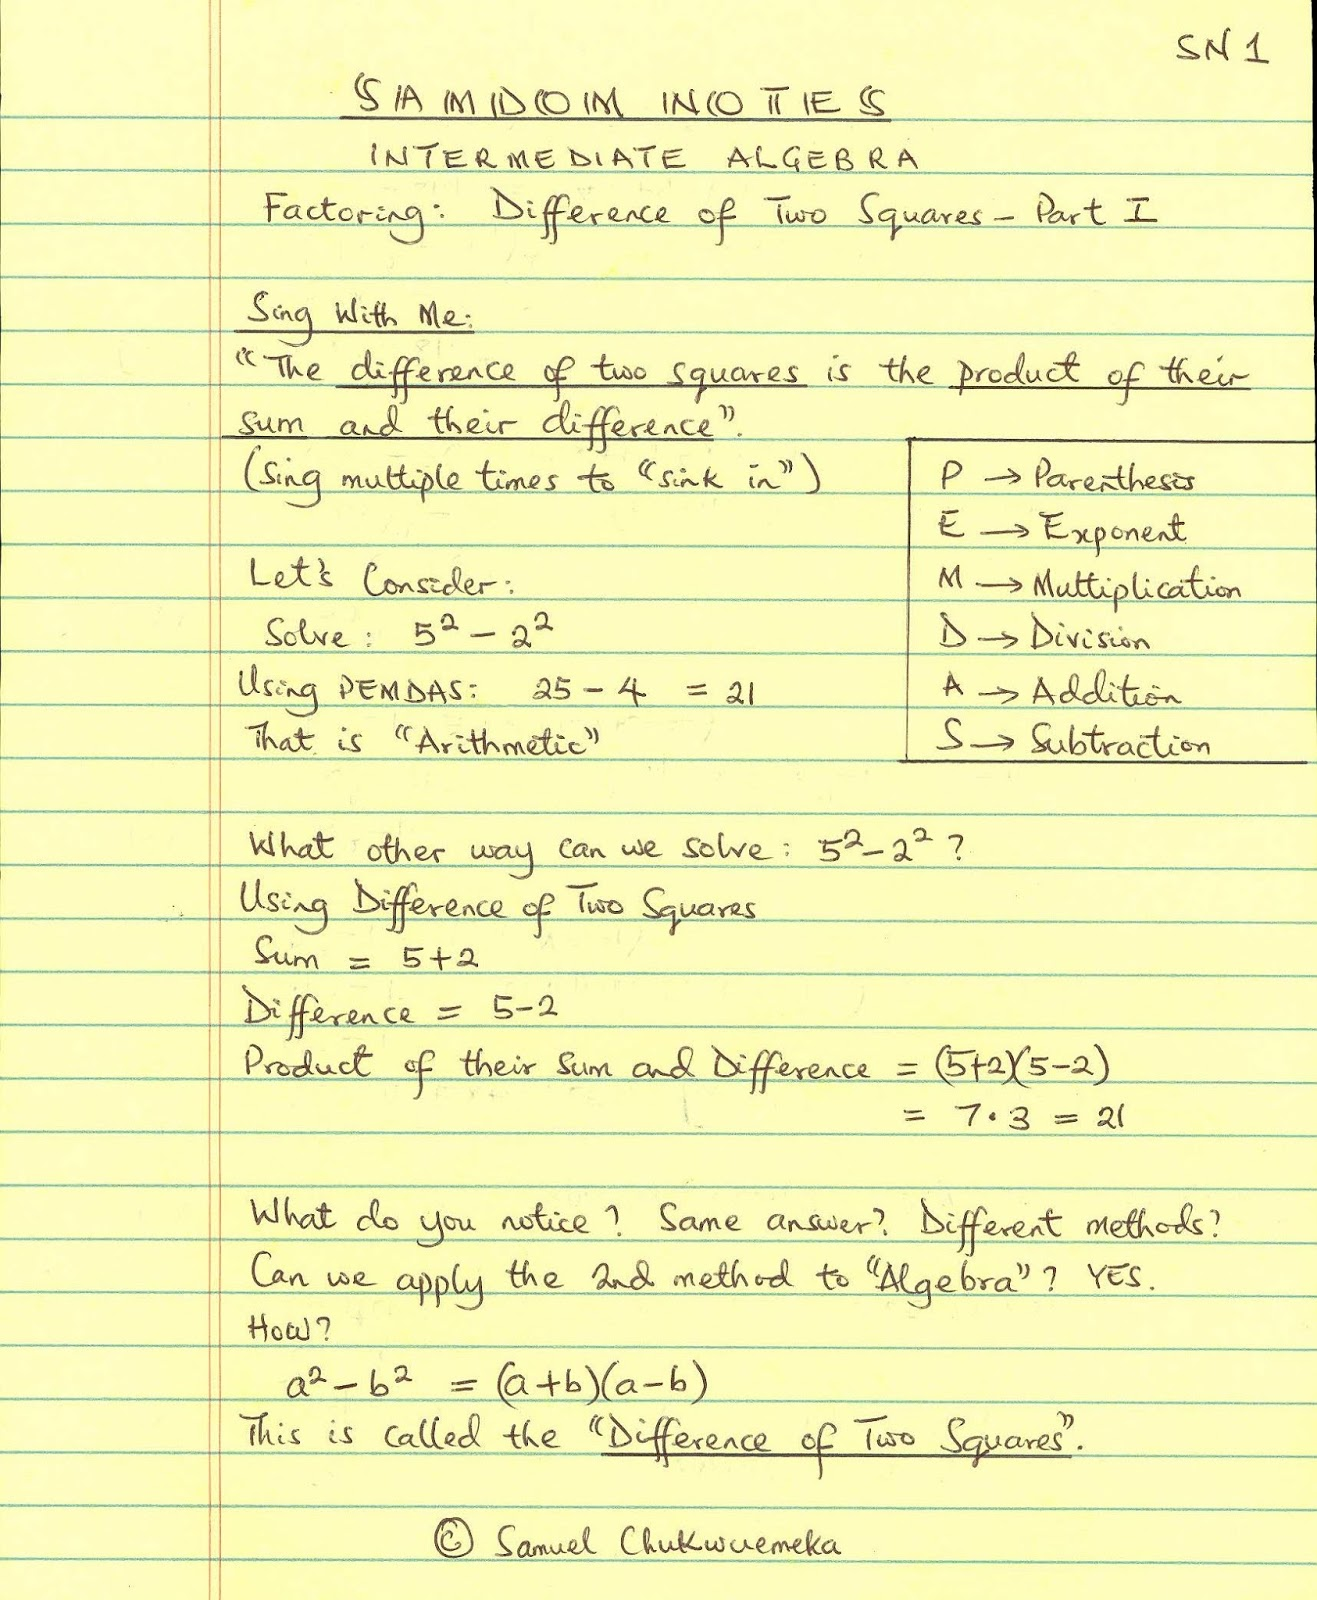 Algebra Made Simple Factoring Difference Of Two